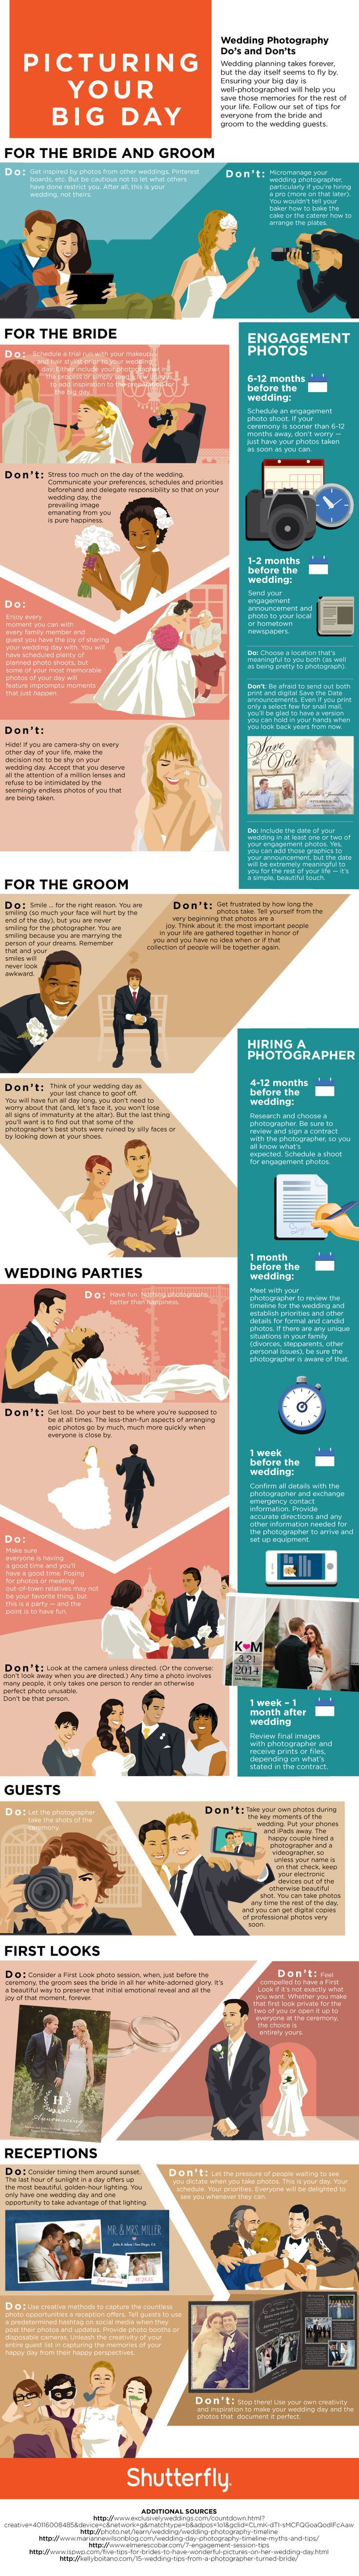 Plan Out a Picture Perfect Wedding Day